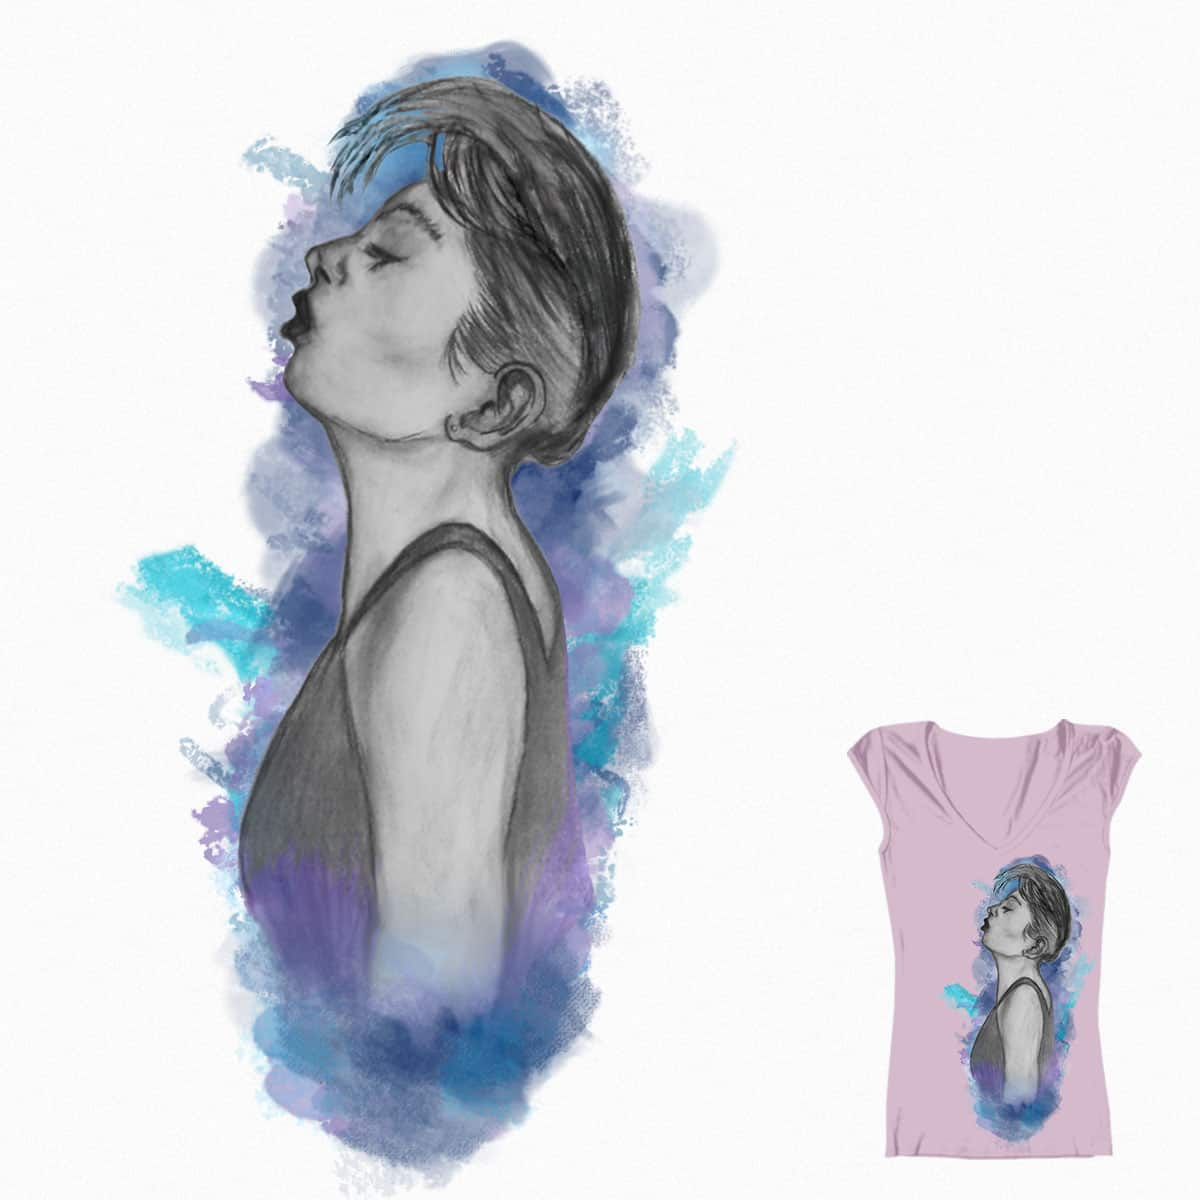 Her Name Was Clementine by Dylon51 on Threadless